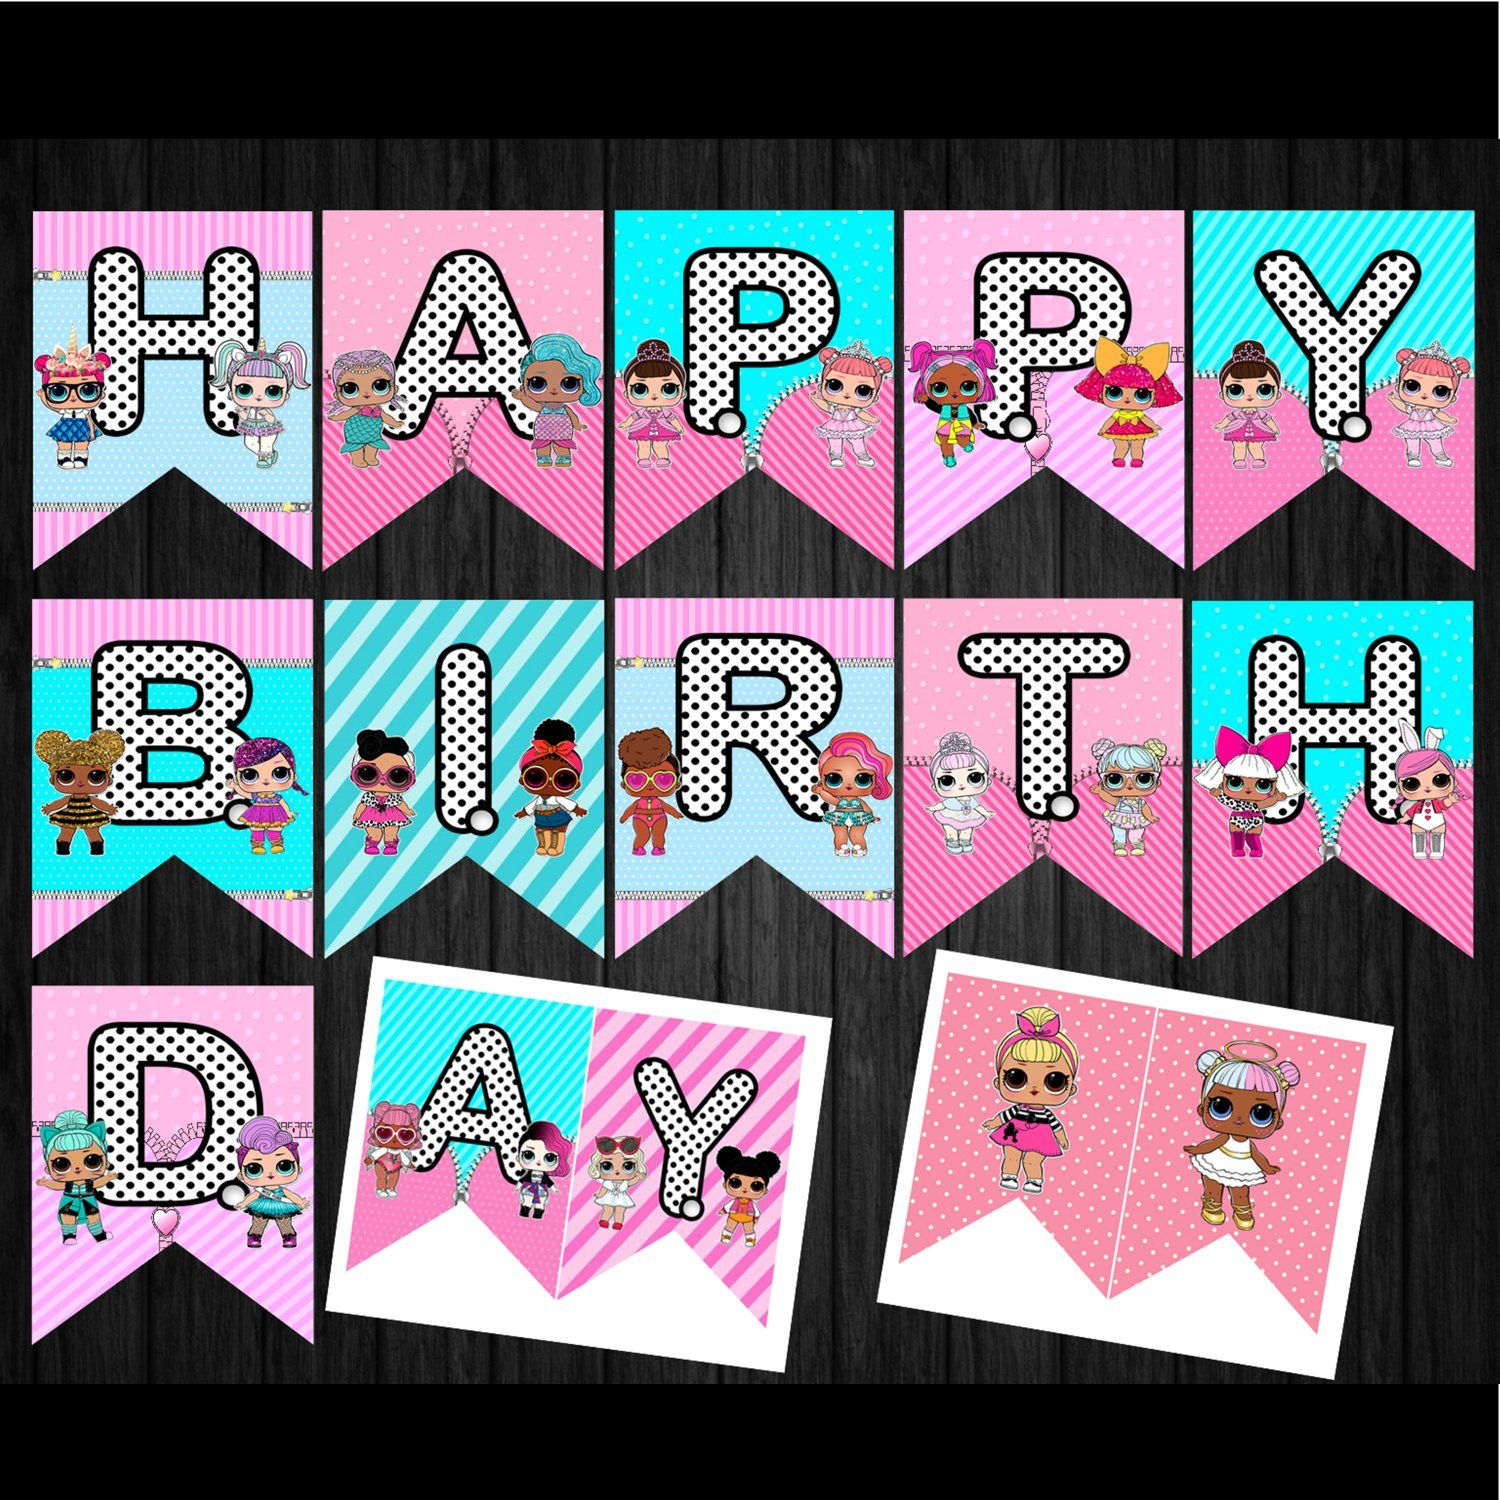 Lol Surprise Dolls Happy Birthday Banners Printable Digital Instant Download Banner Bunting Garl Happy Birthday Kids Happy Birthday Fun Happy Birthday Cupcakes